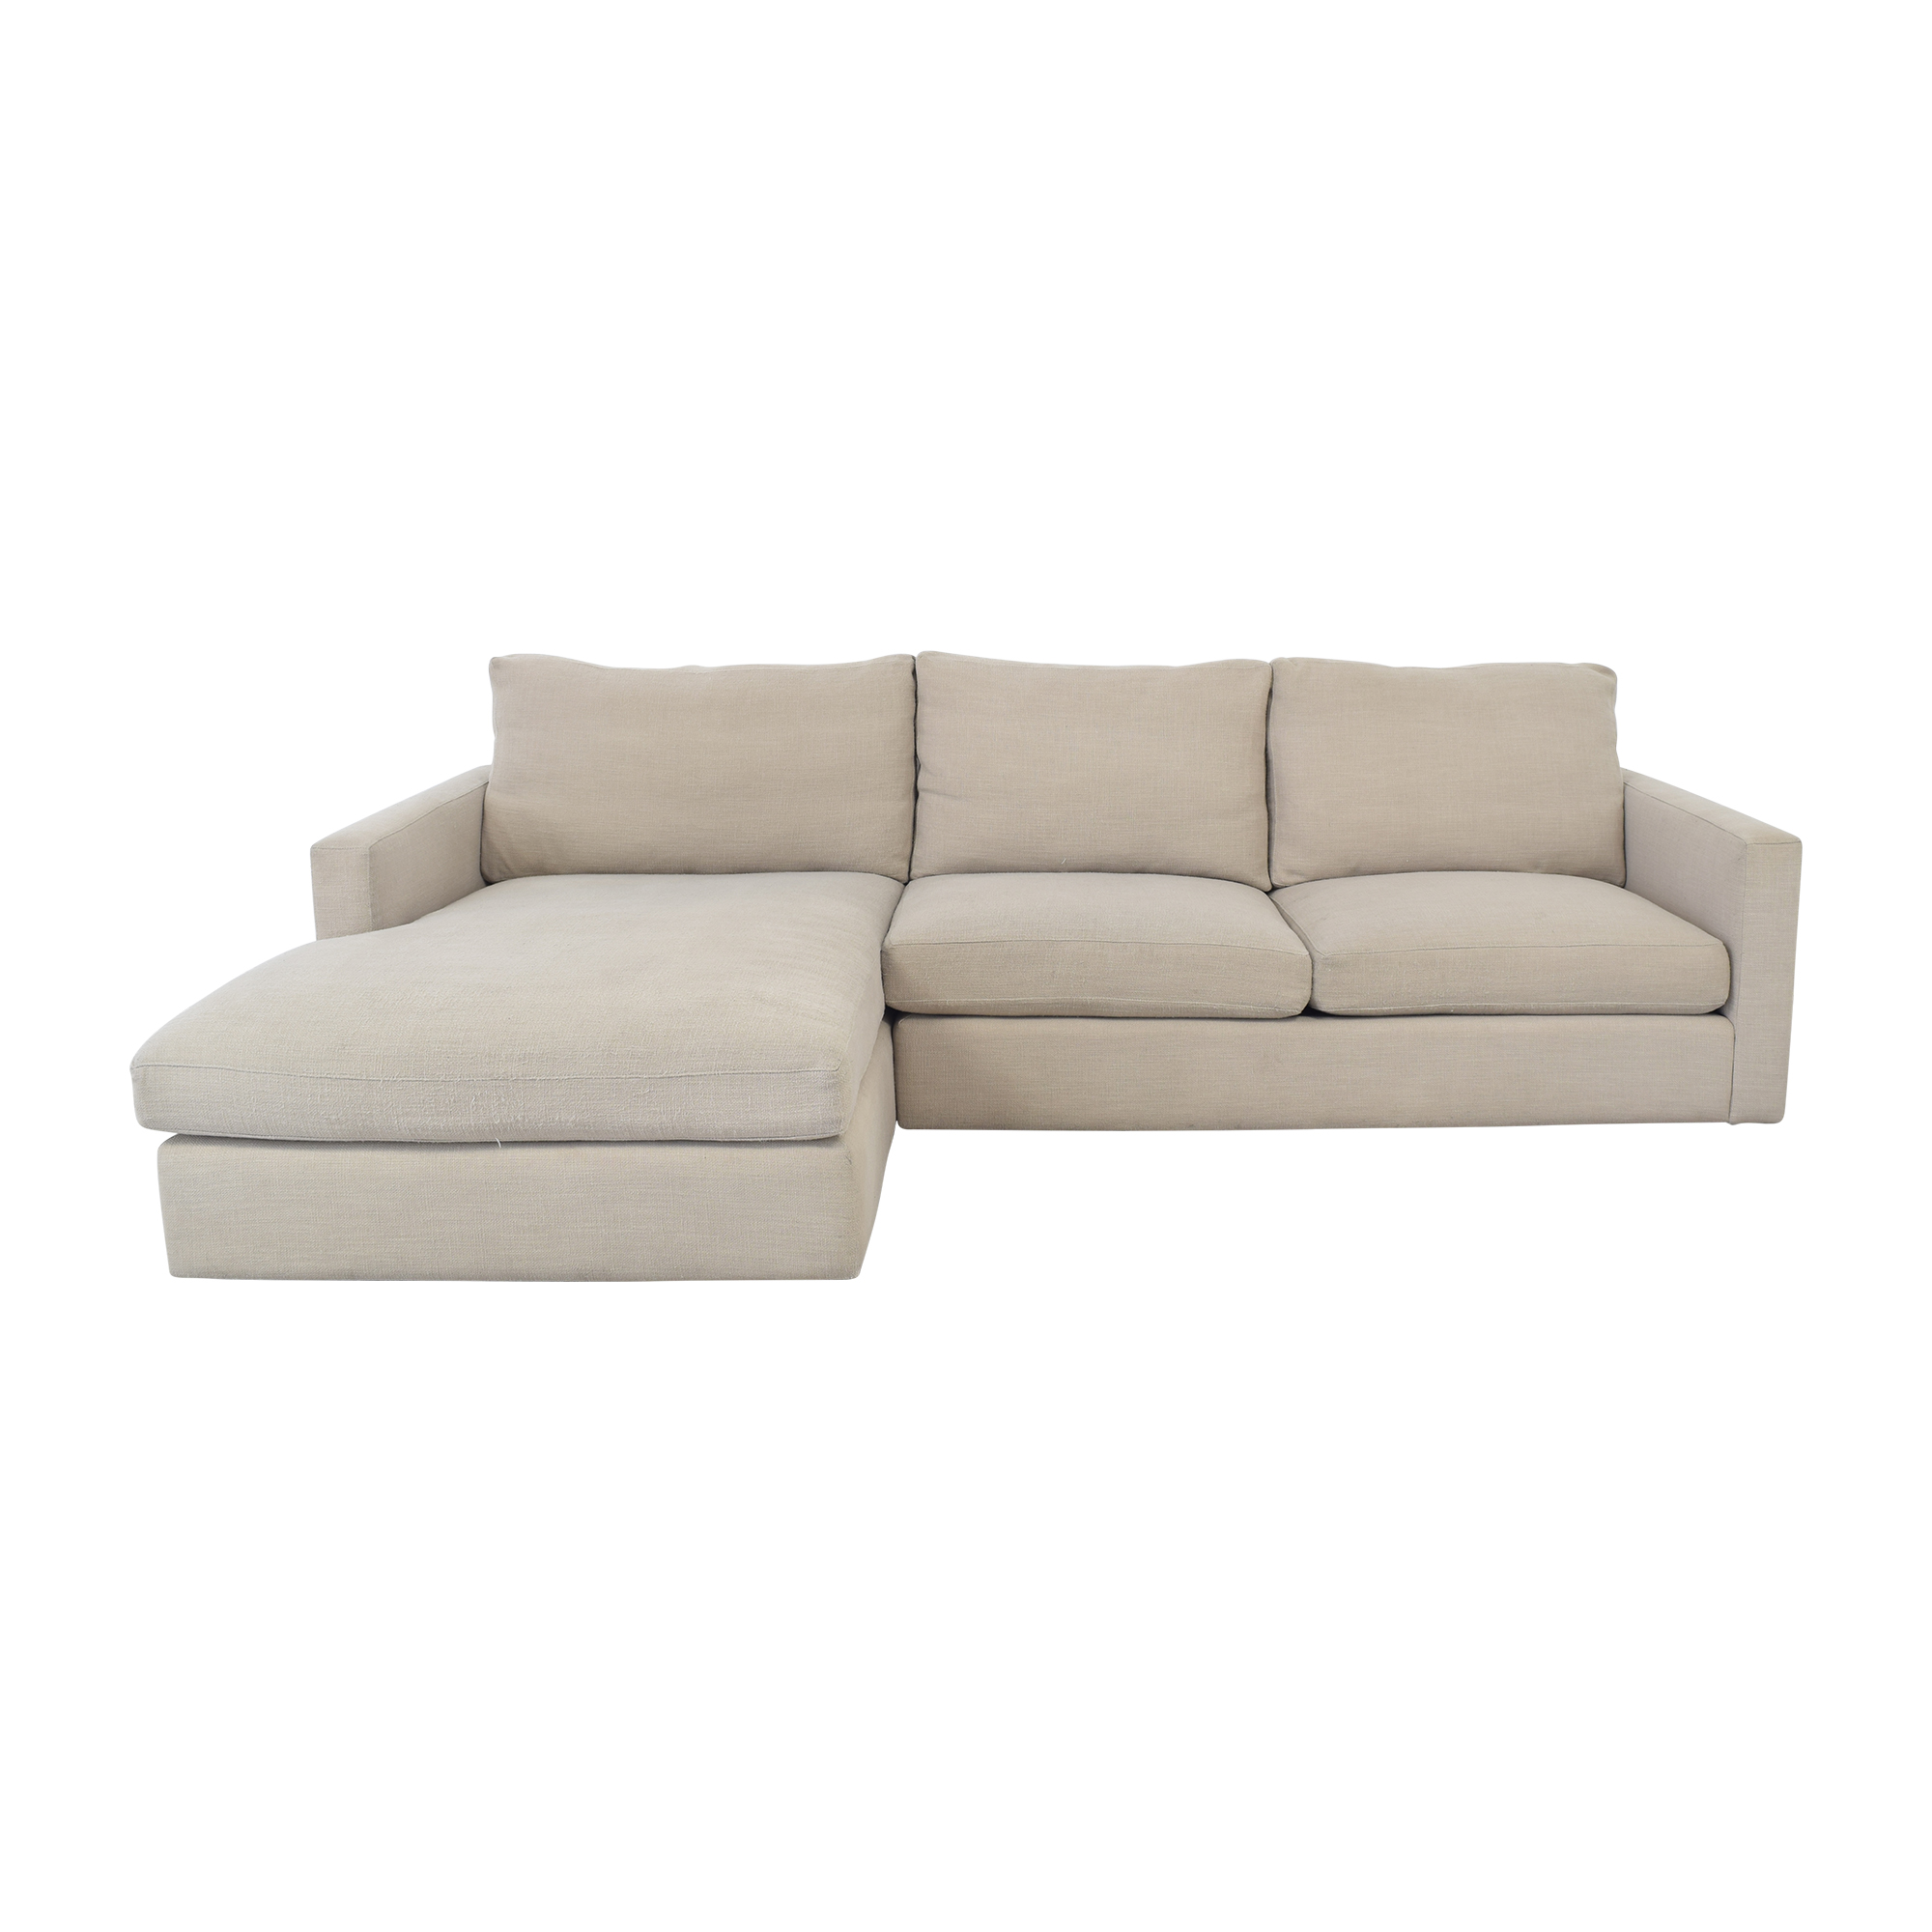 ABC Carpet & Home Cobble Hill Chaise Sectional Sofa Sectionals